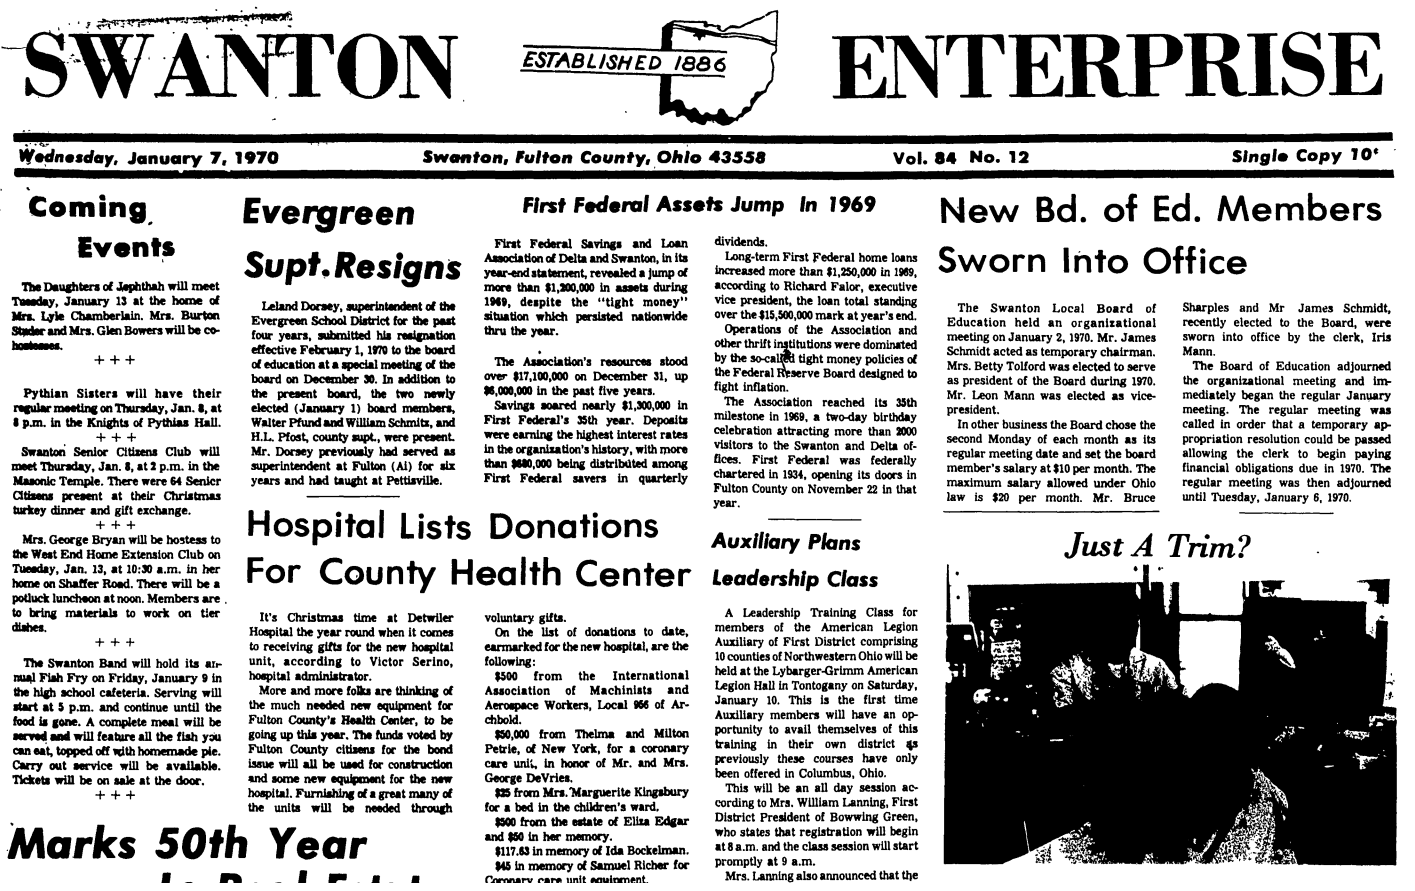 Over 95 Years Of The Swanton Enterprise Now Online